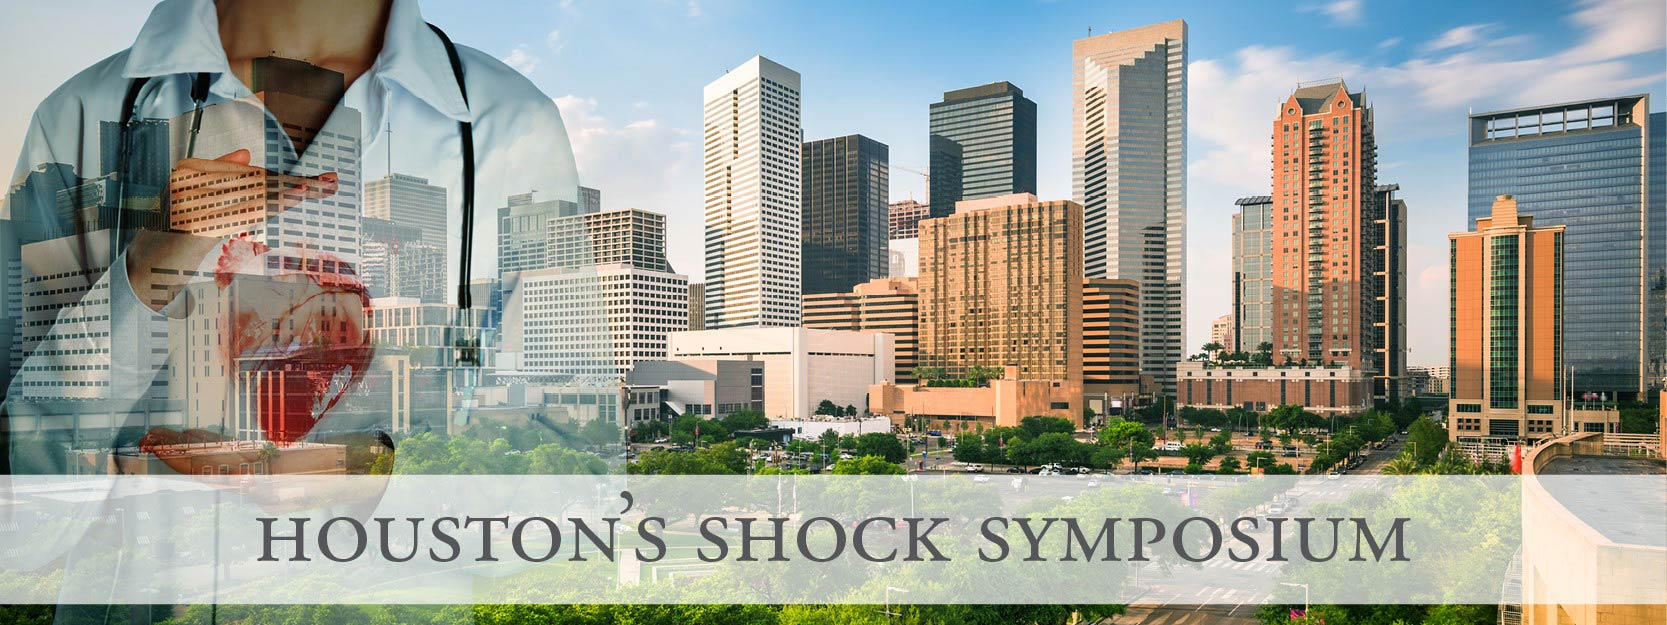 Houston's Shock Symposium banner image